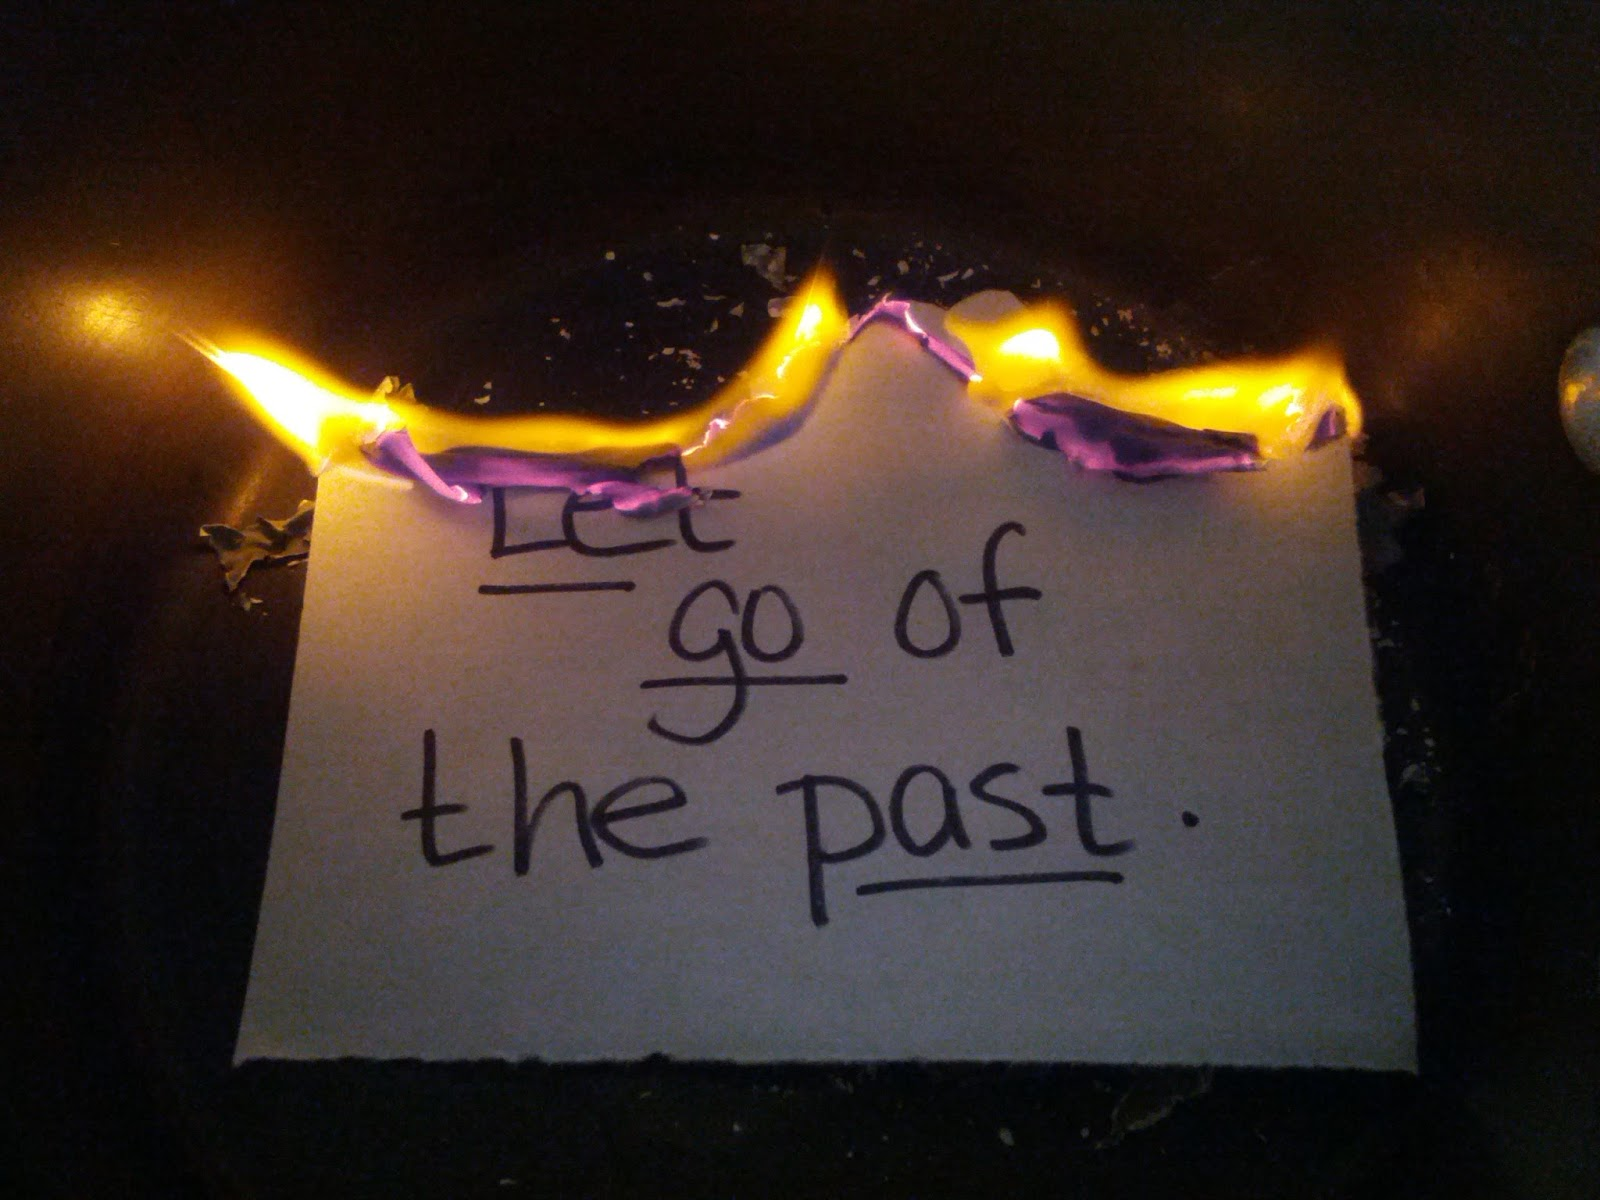 Letting go of the past essay